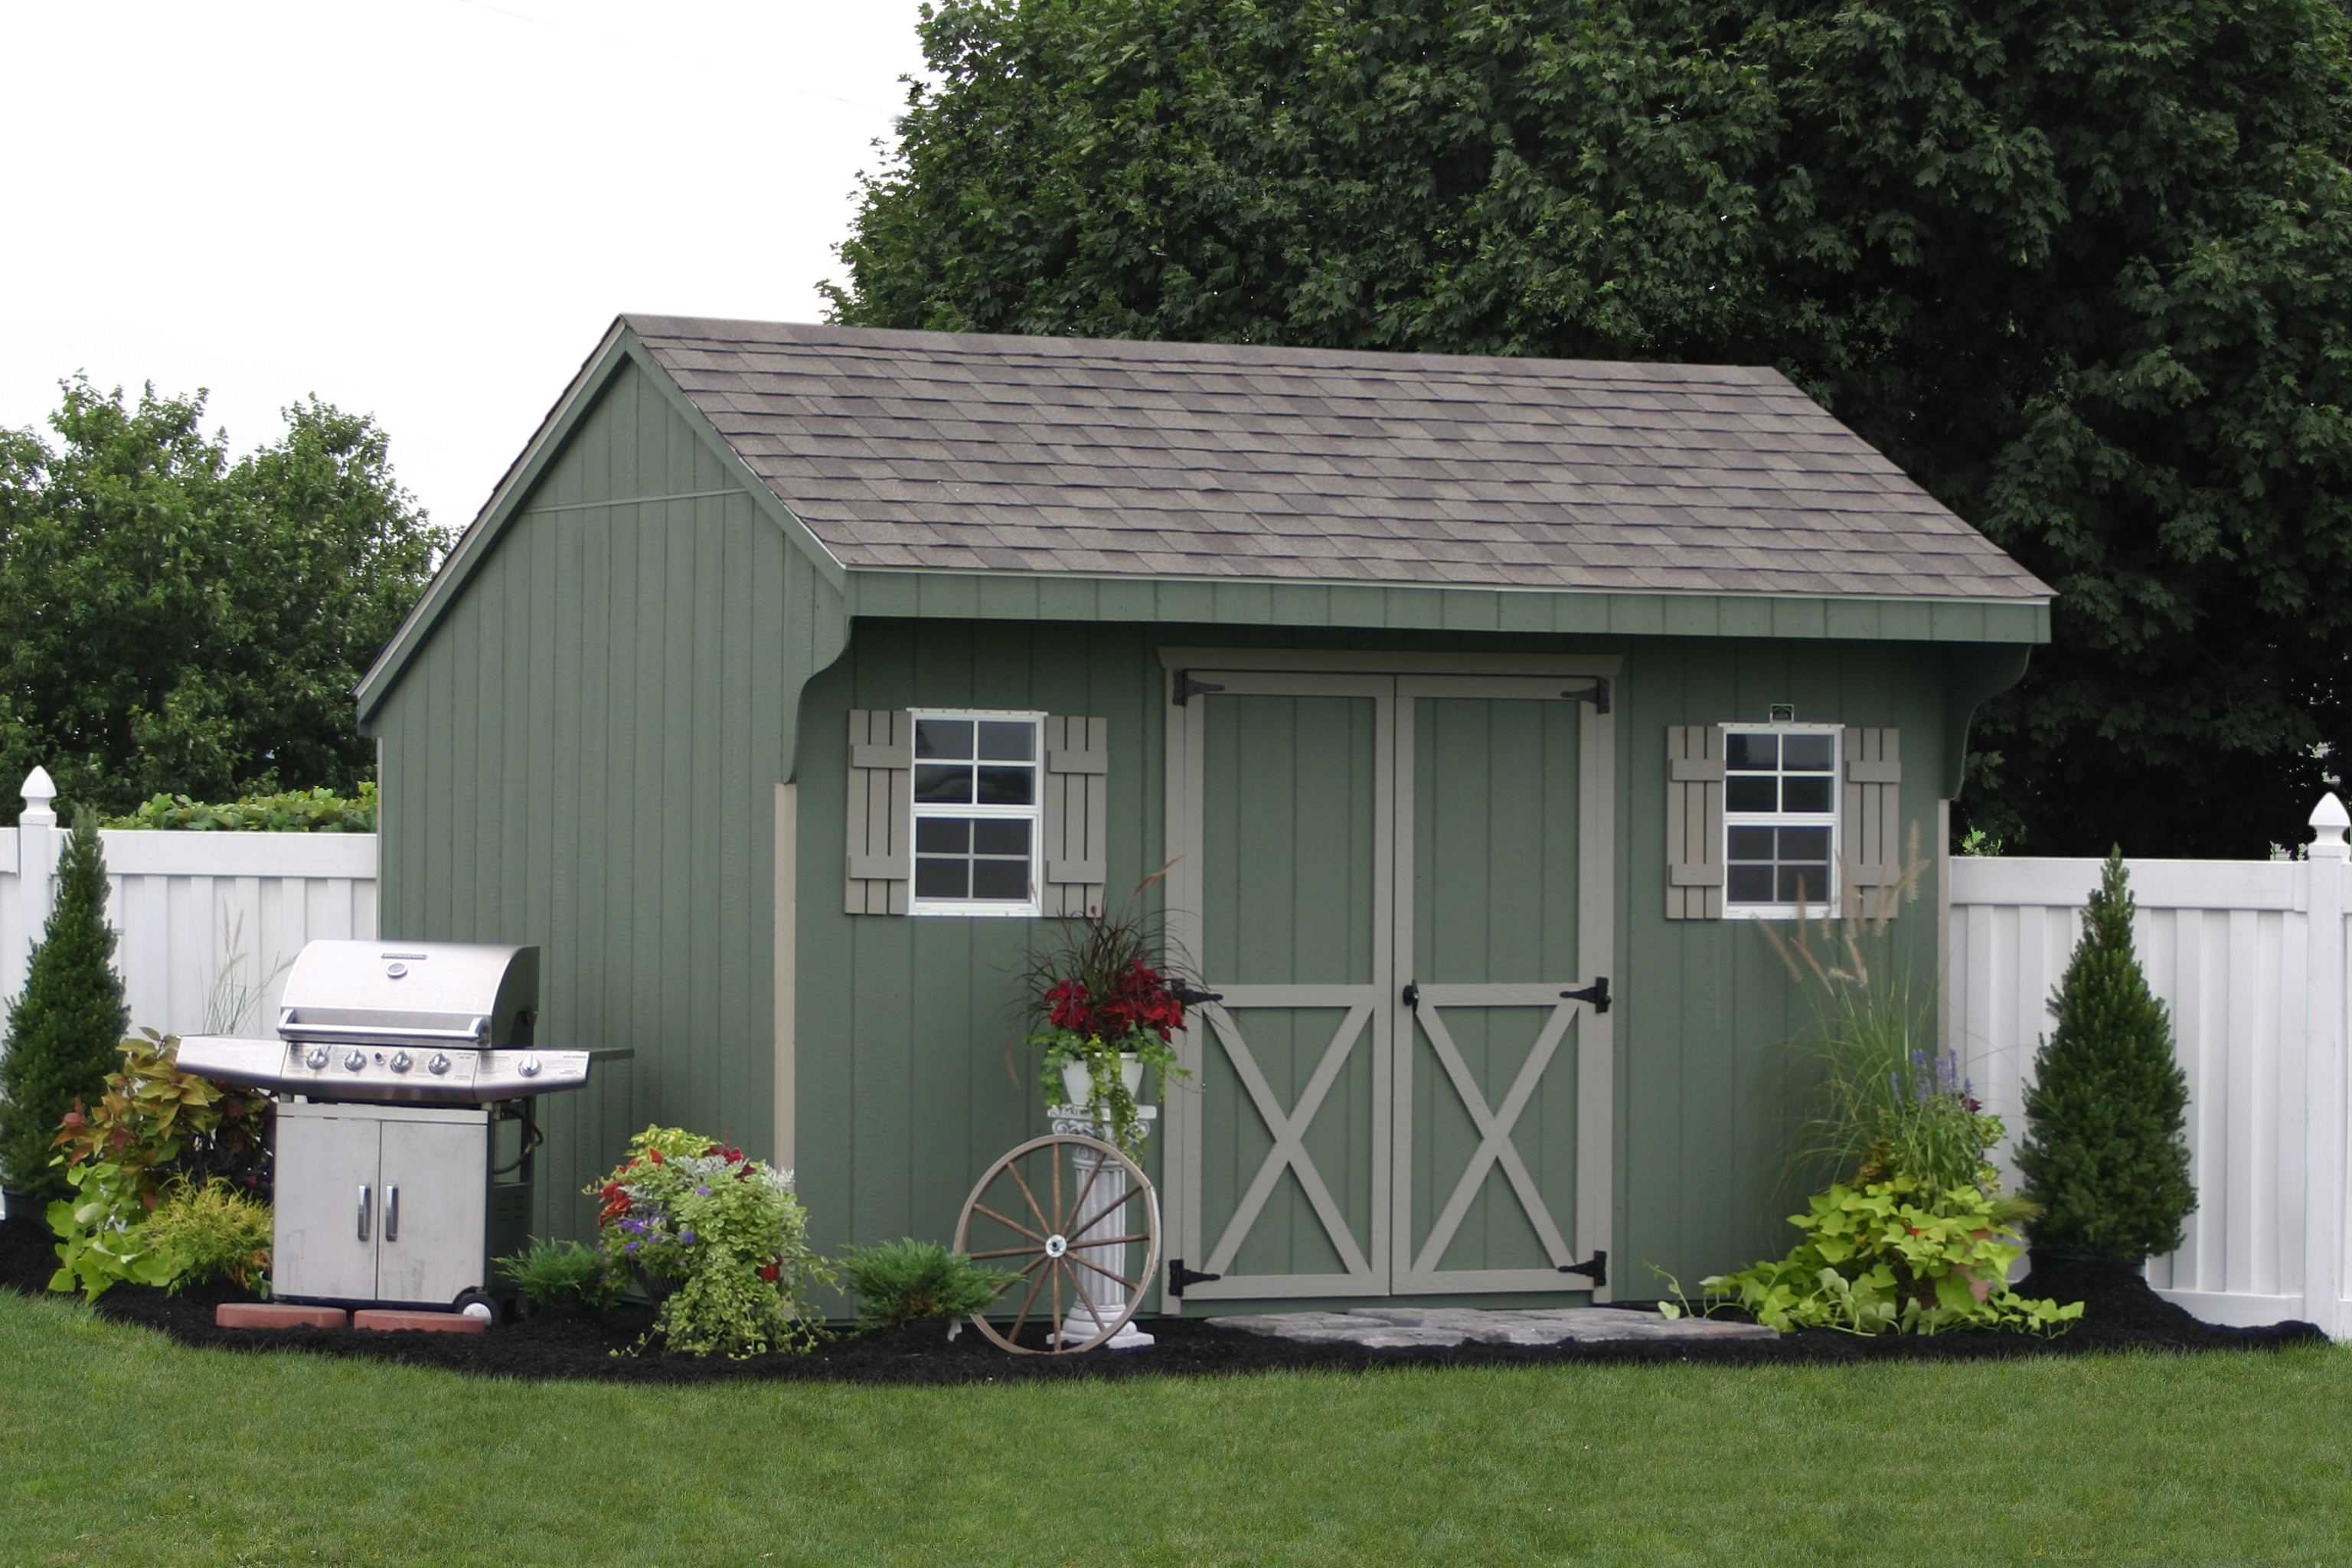 Shed blueprints the easy way to construct your own shed for Prefab garden buildings